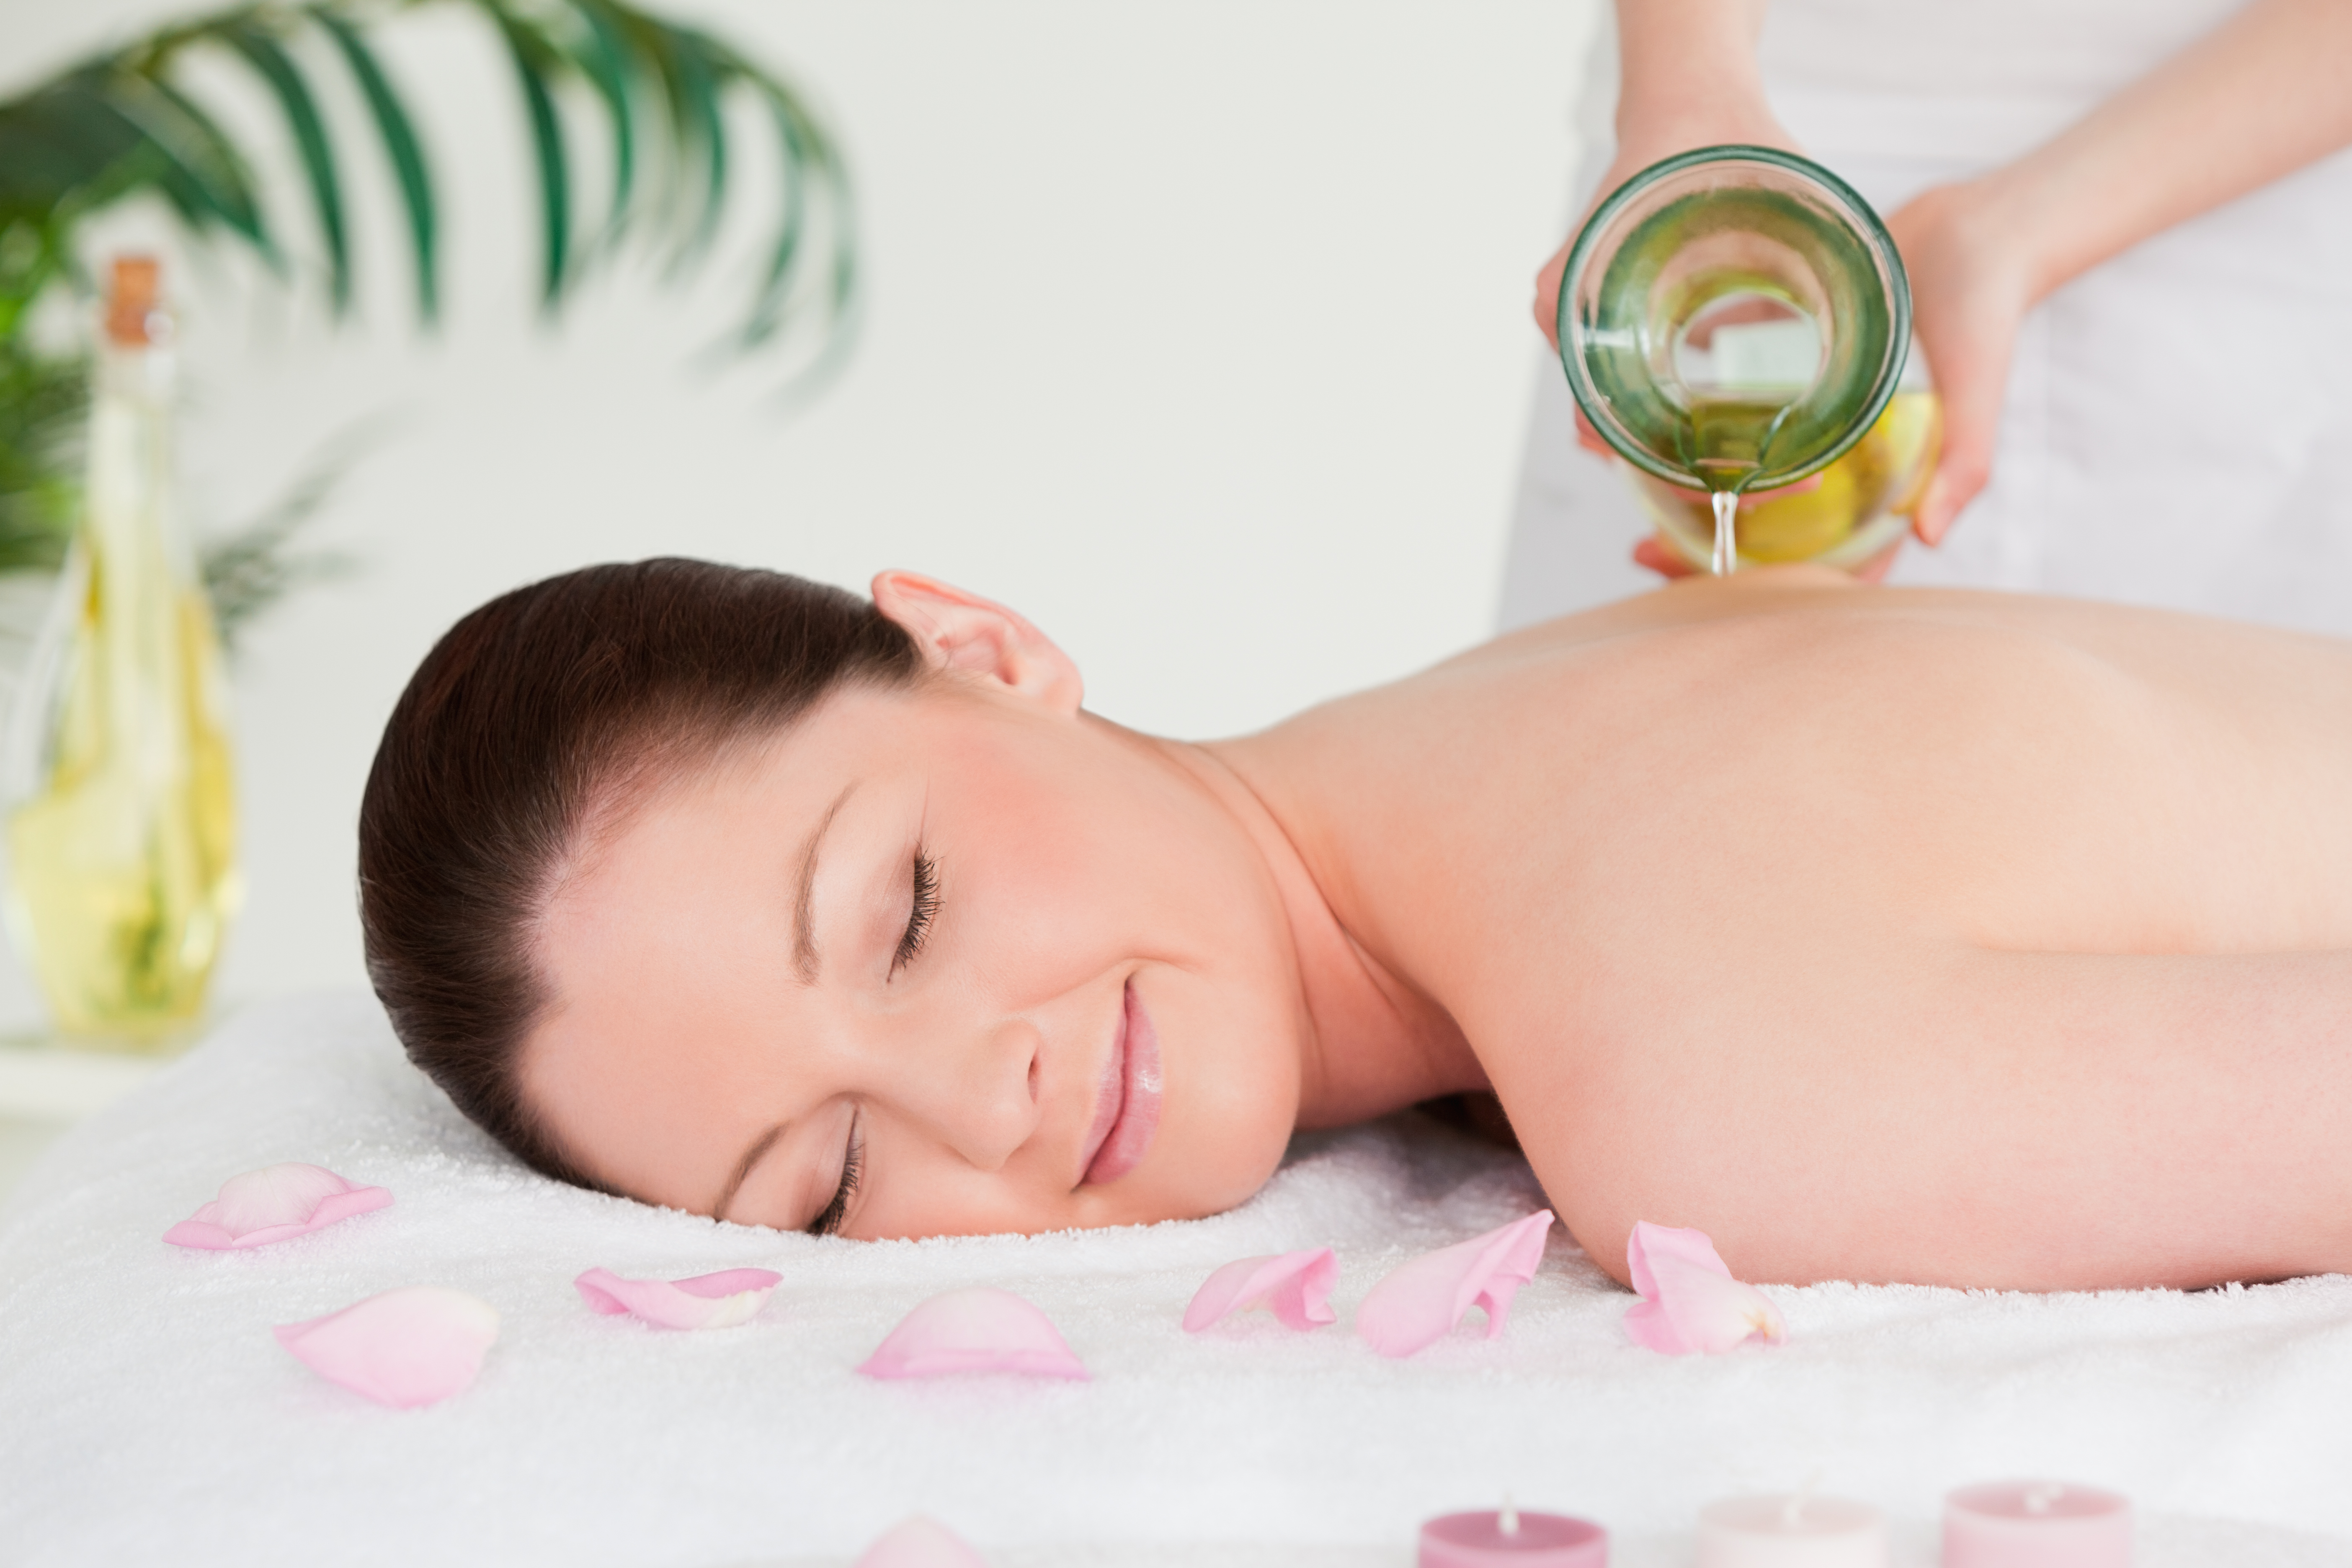 Masseuse pouring massage oil on a young woman's back in a spa